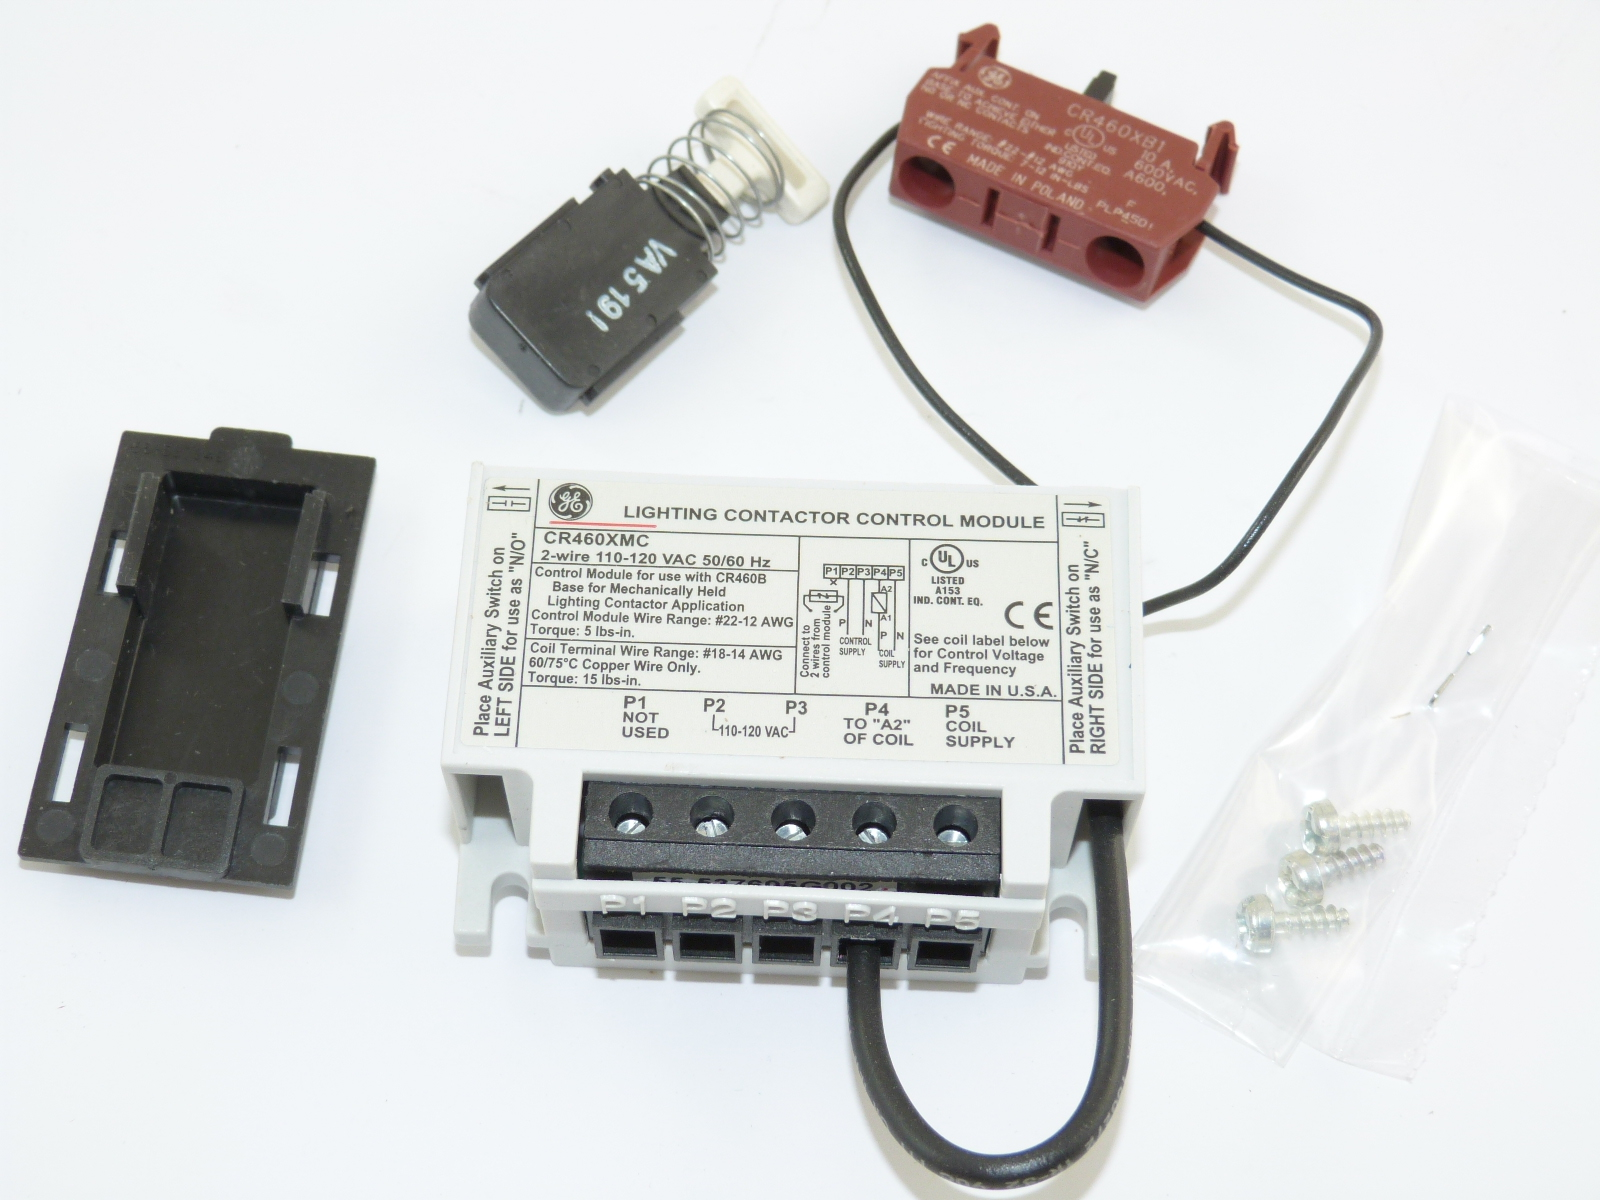 hight resolution of cr460xmc general electric lighting contactor accessories